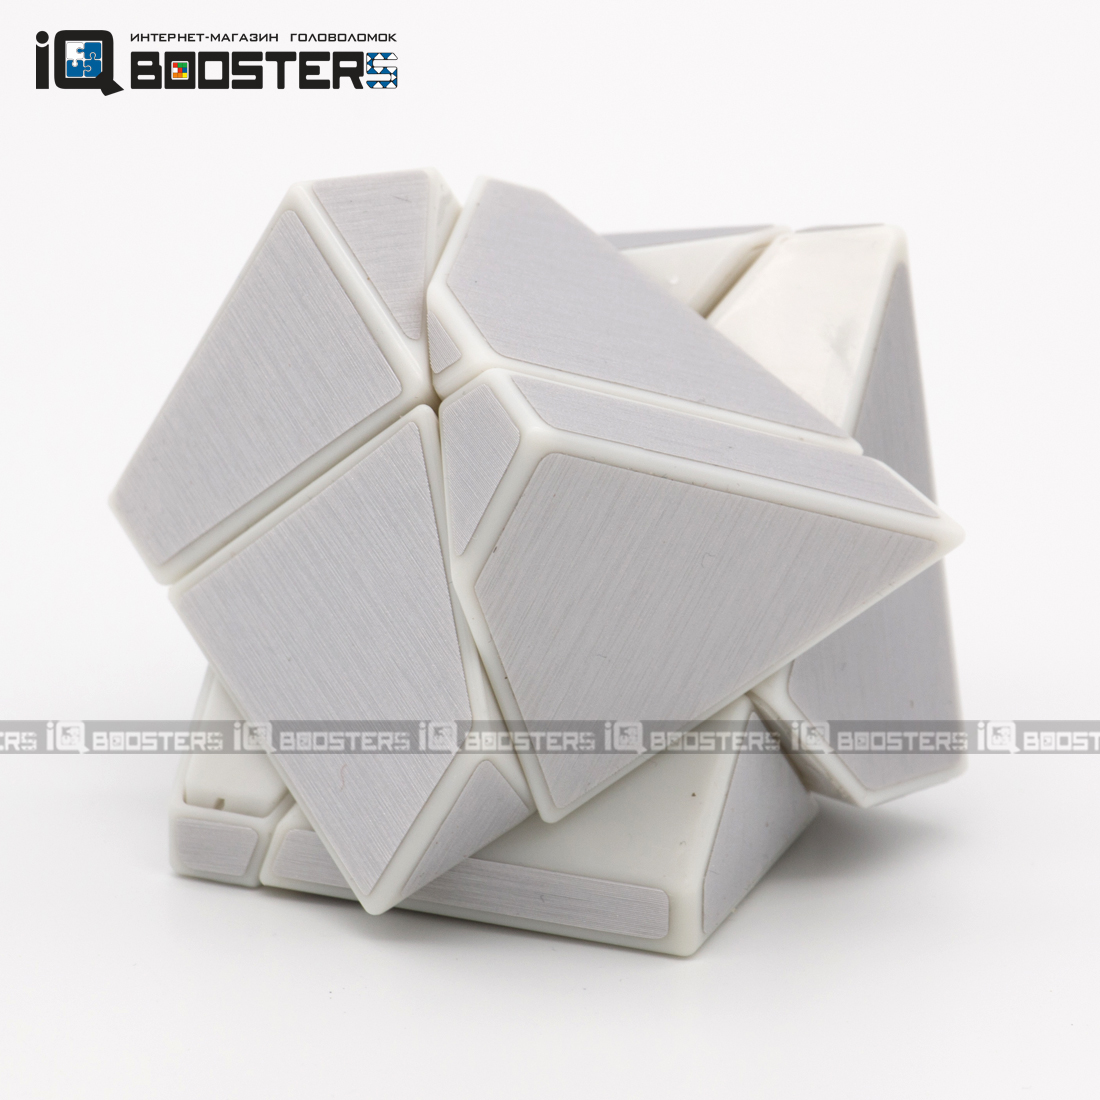 limcube_ghost_2x2_2s